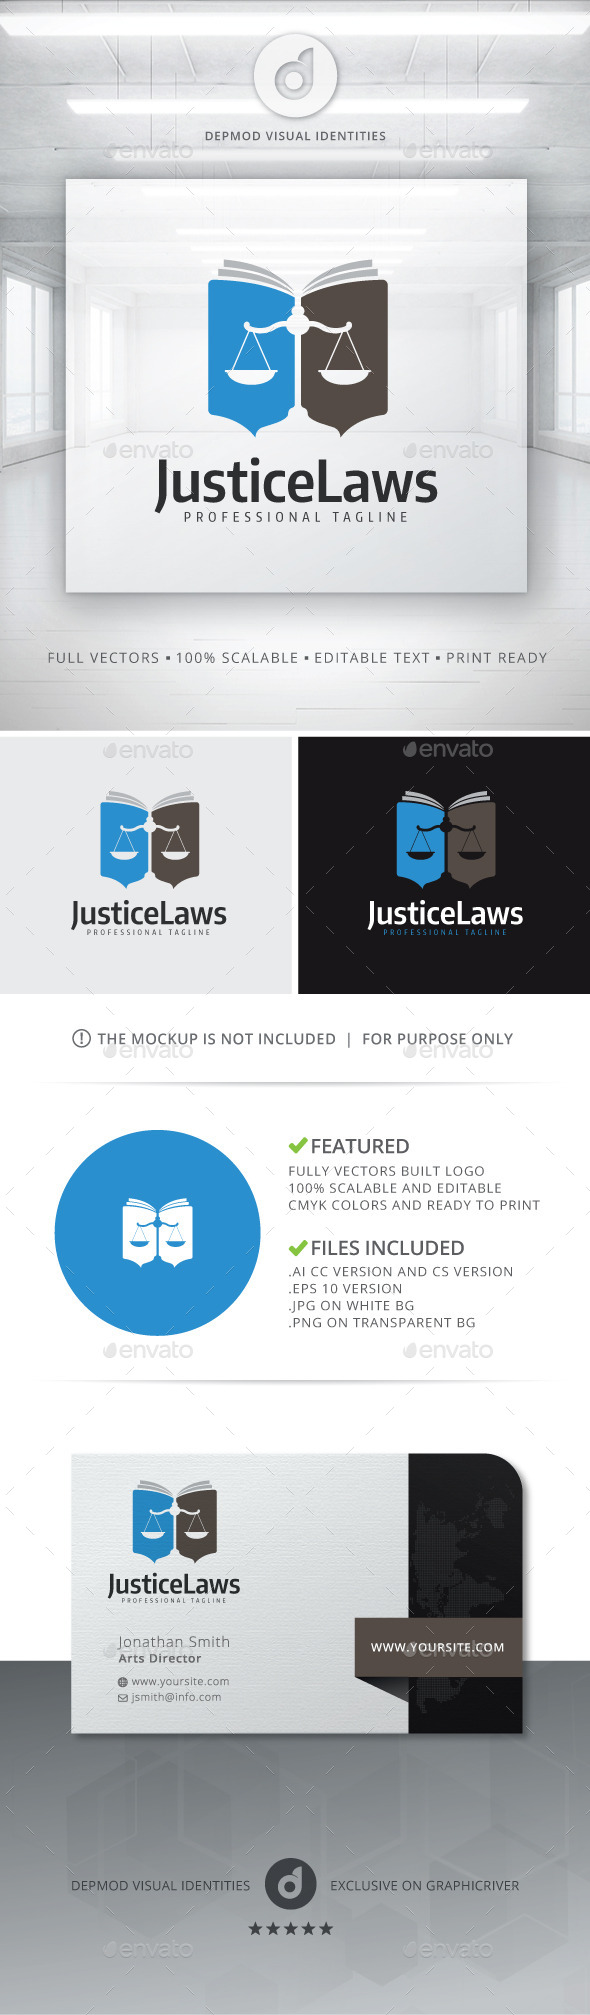 GraphicRiver Justice Laws Logo 11548120